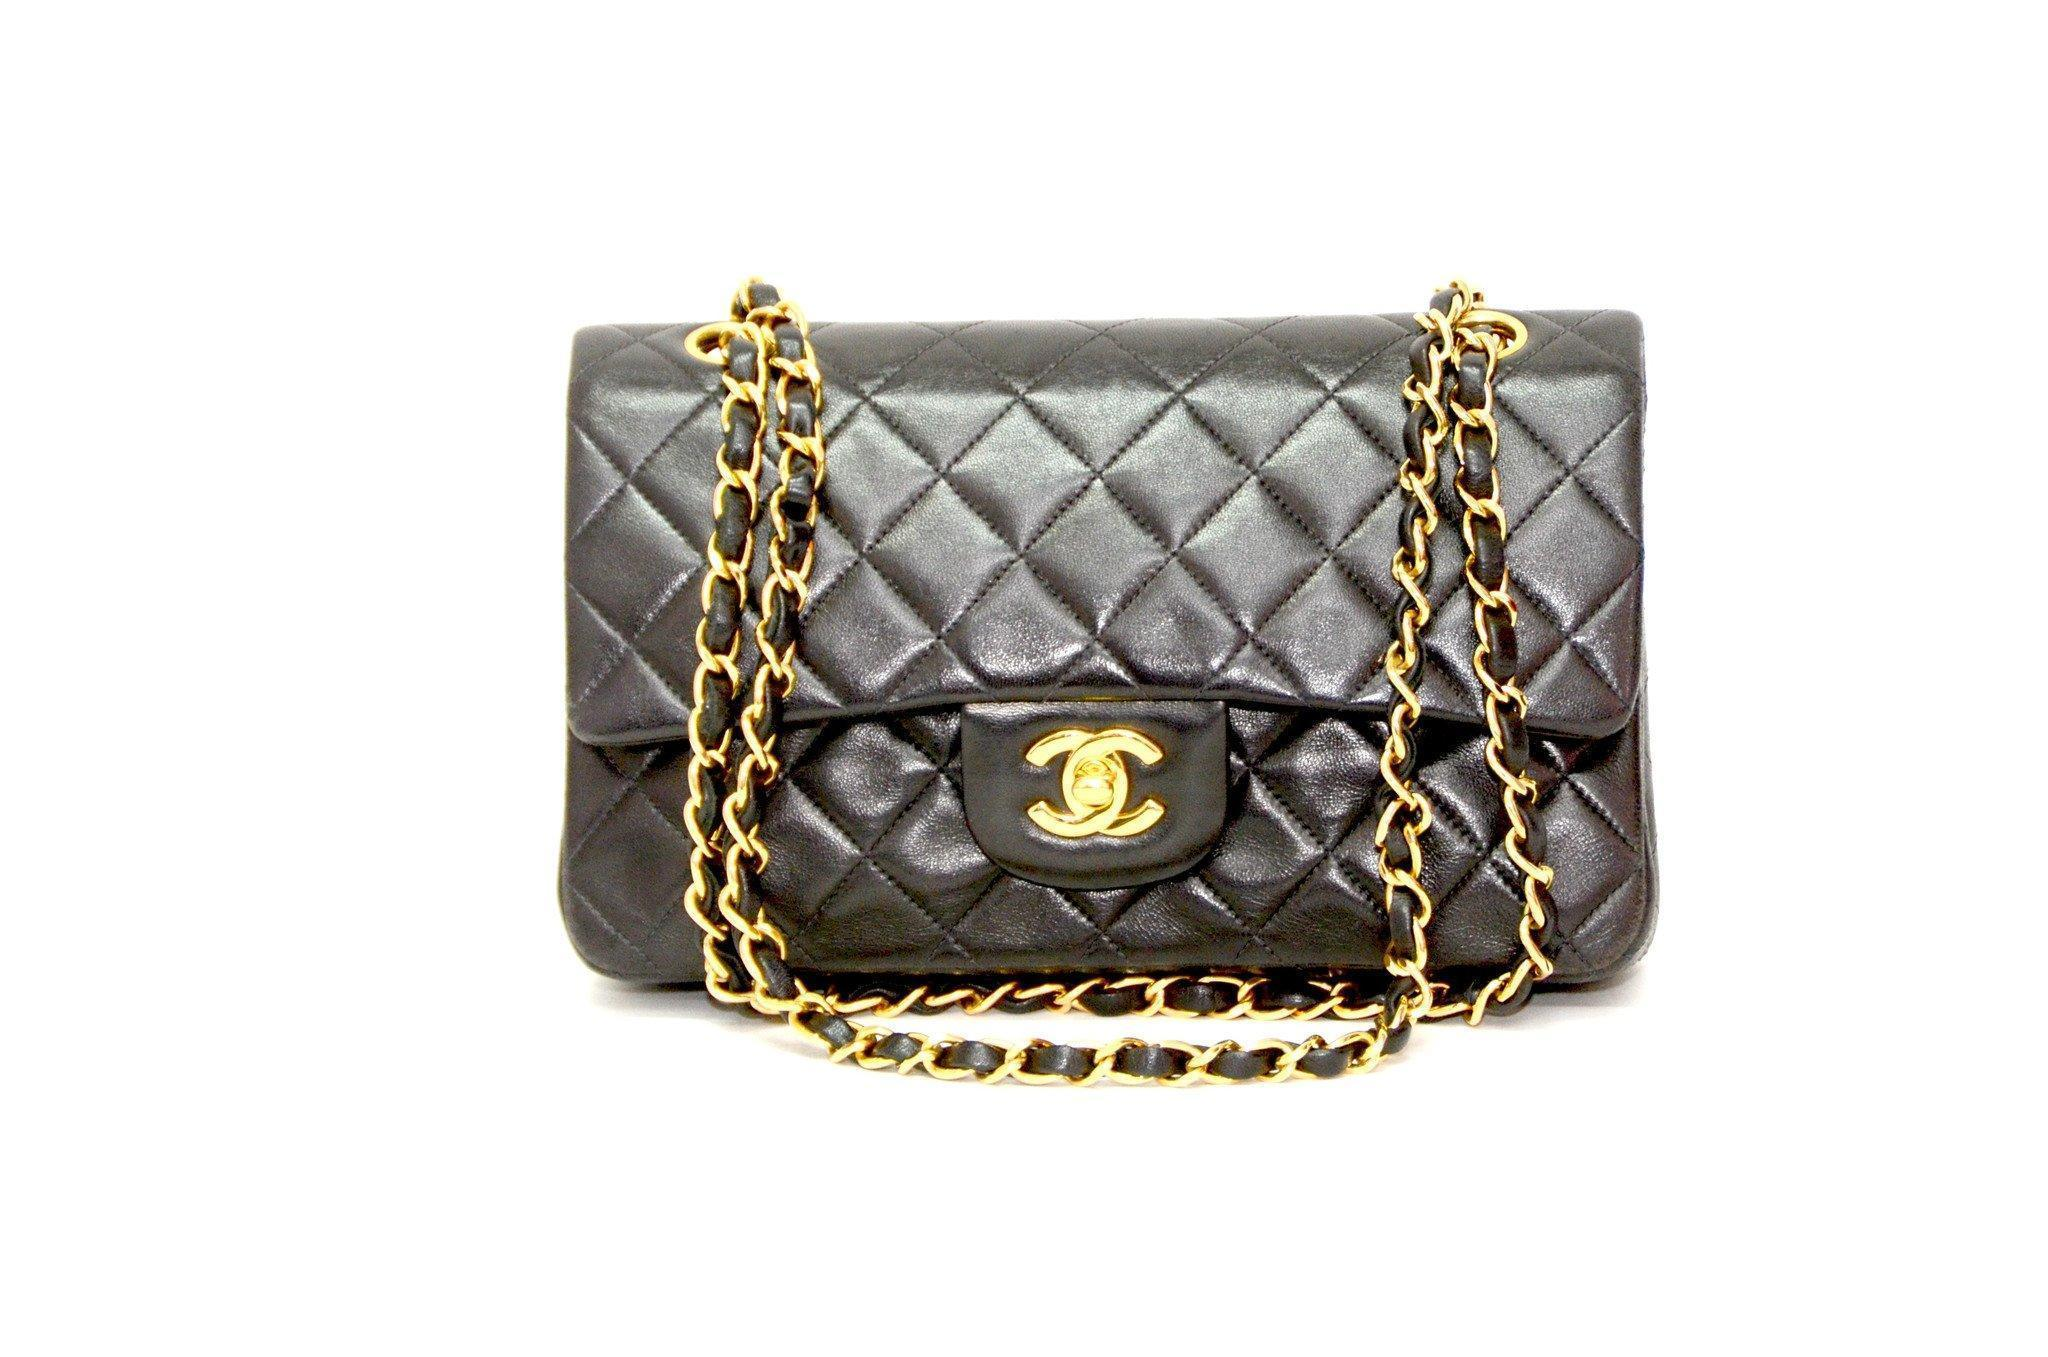 be4e17e4a82e44 Authentic Vintage Chanel 23cm Bag in Black Calf Leather with Gold Hardware